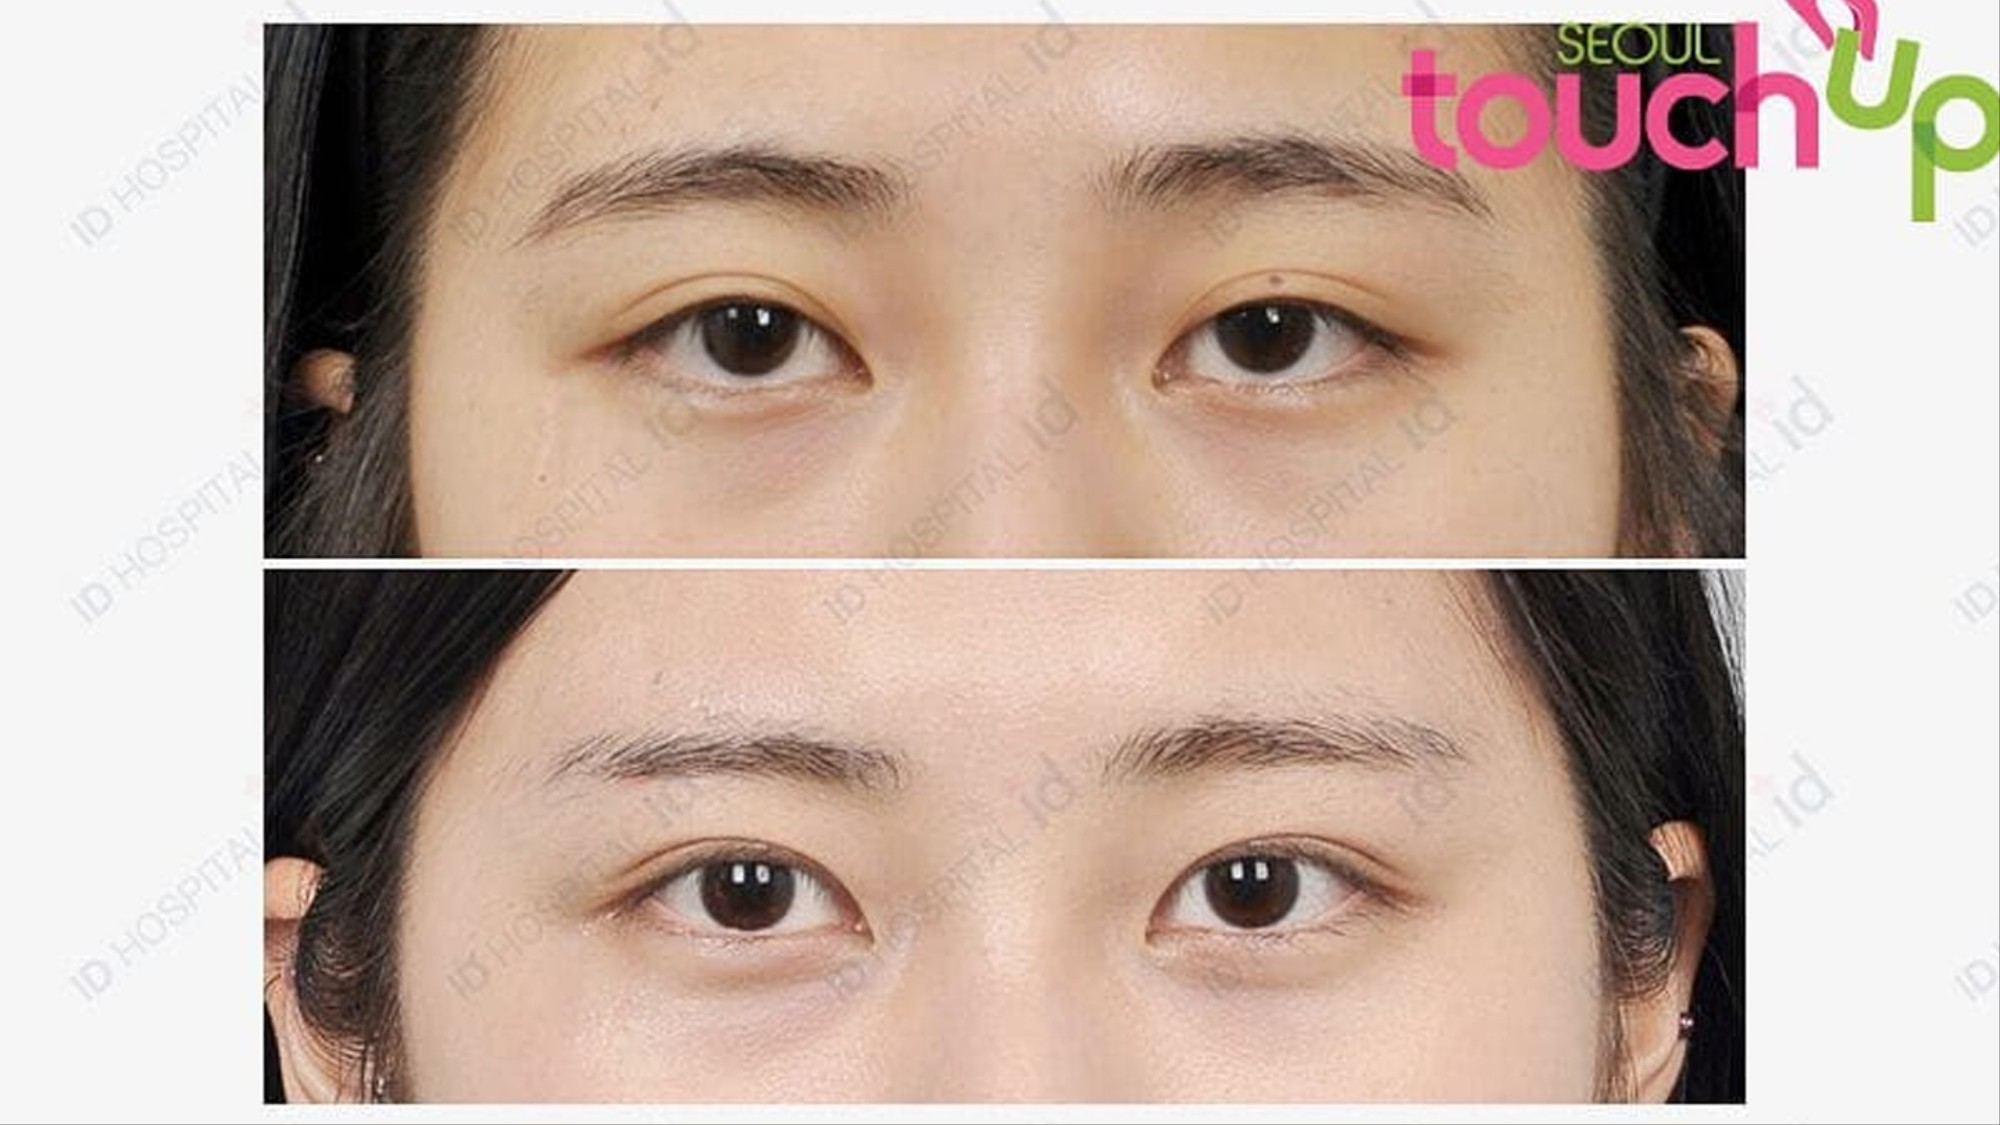 How double eyelid surgery has become a rite of passage for